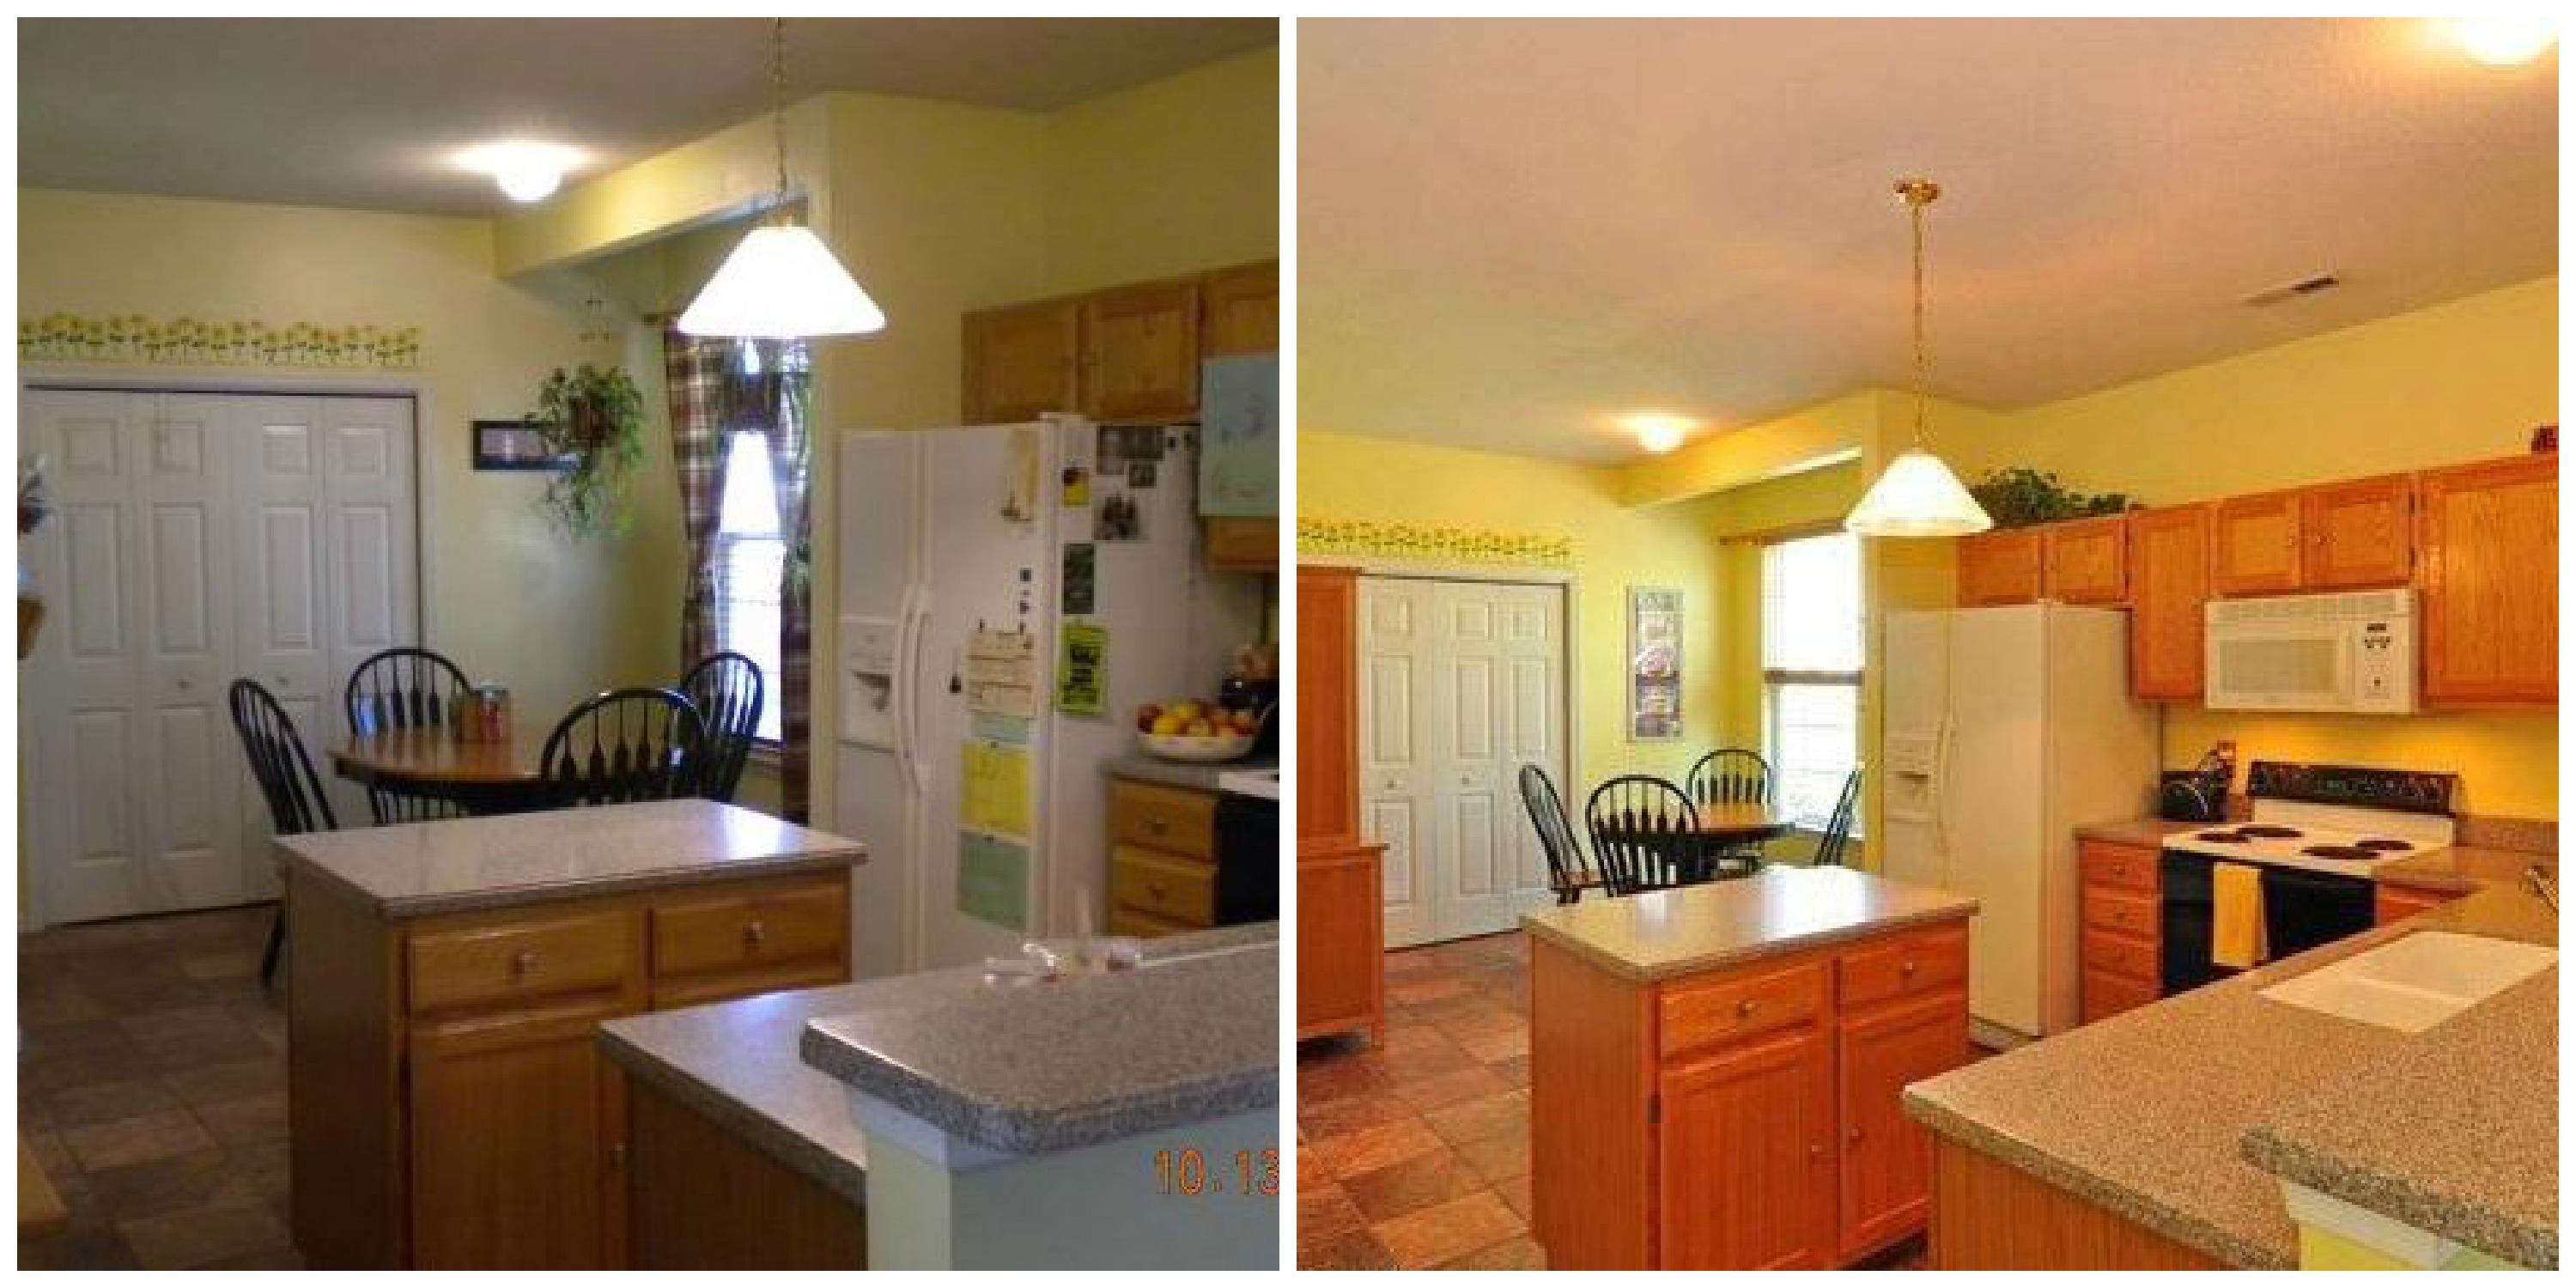 How To Stage A House Prior To Selling: Staging Before And After-Williamsburg VA